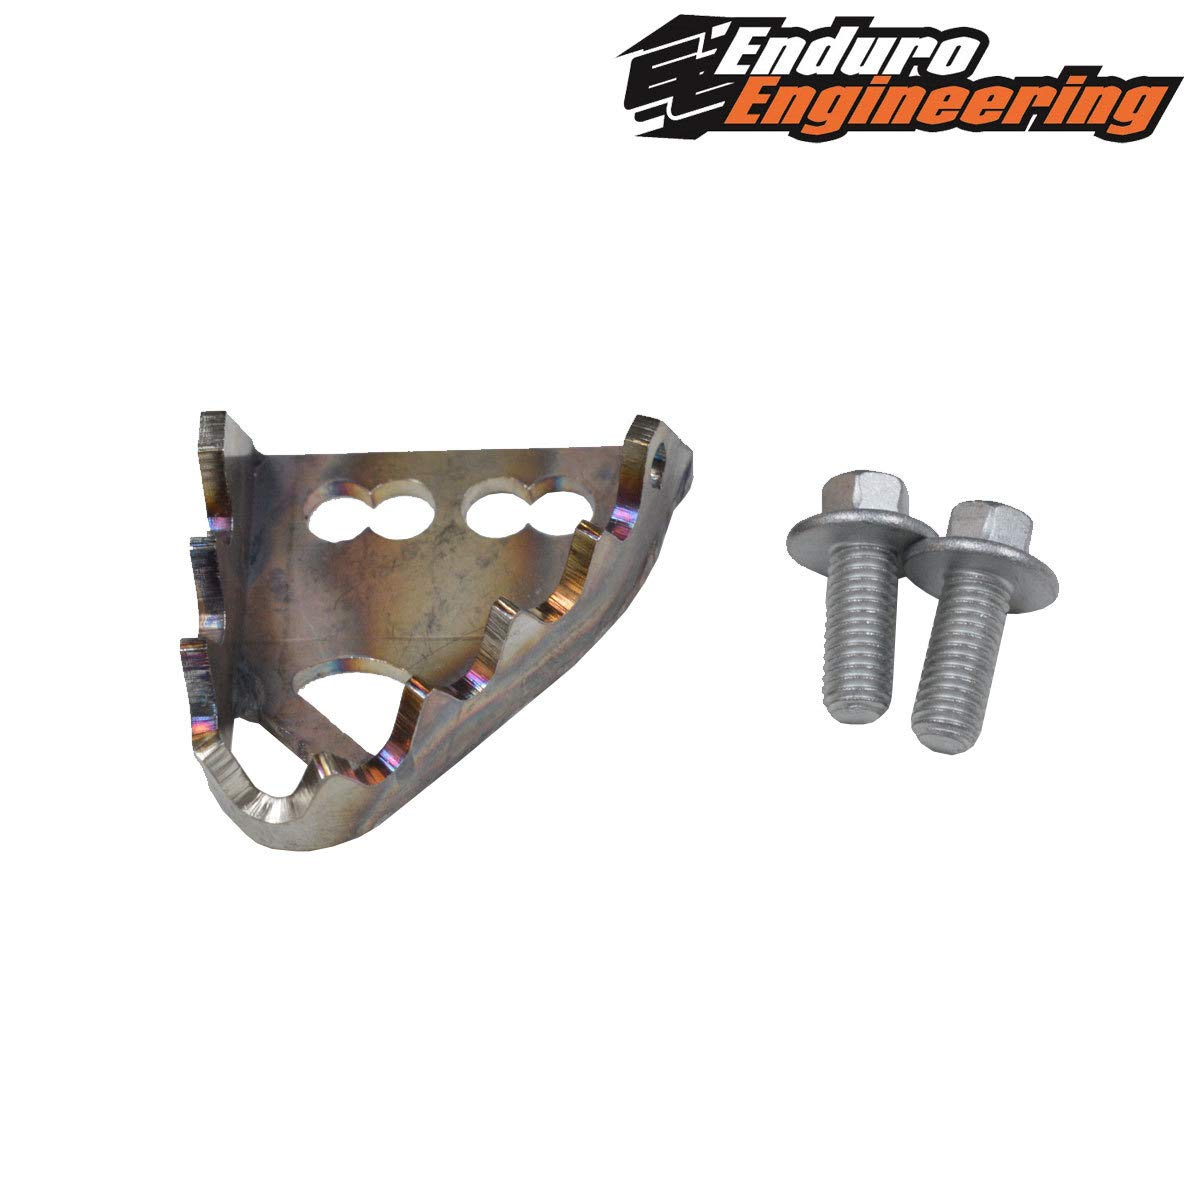 Enduro Engineering Brake Pedal Tip - Replacement Fits: Beta 2005-2019 RR/RR-S/Xtrainer Sherco 2013-2019 125-500 SC/SC-F/SE-R/SEF-R/Factory by Enduro Engineering